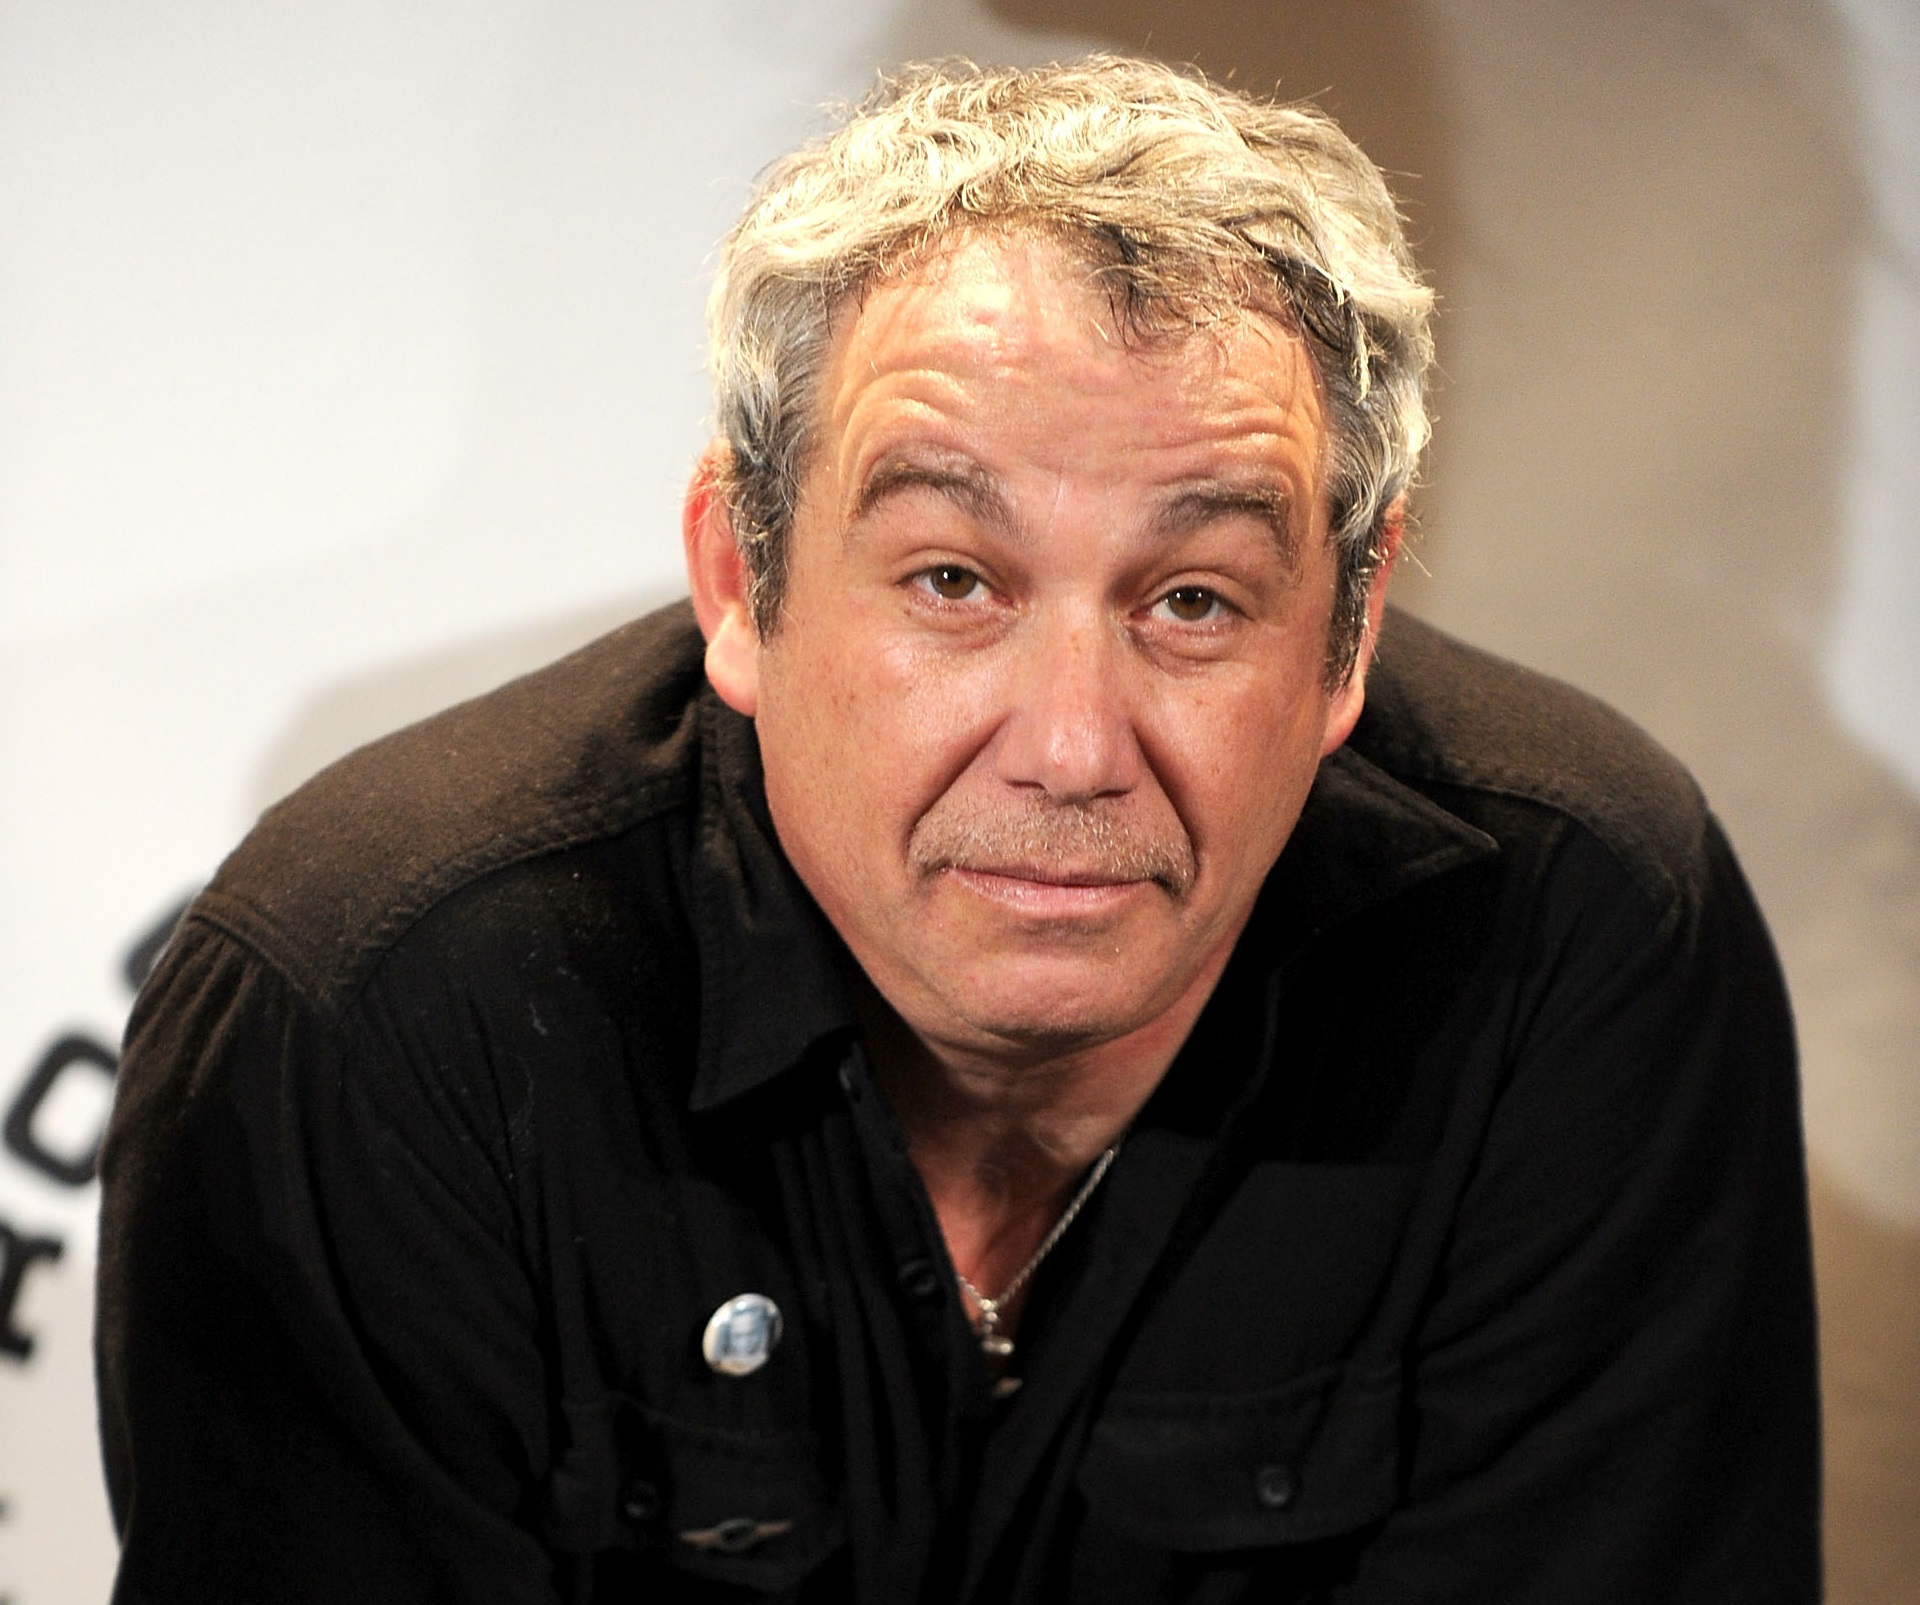 Mike Watt performs May 8 at Mohawk Place. (Getty Images)